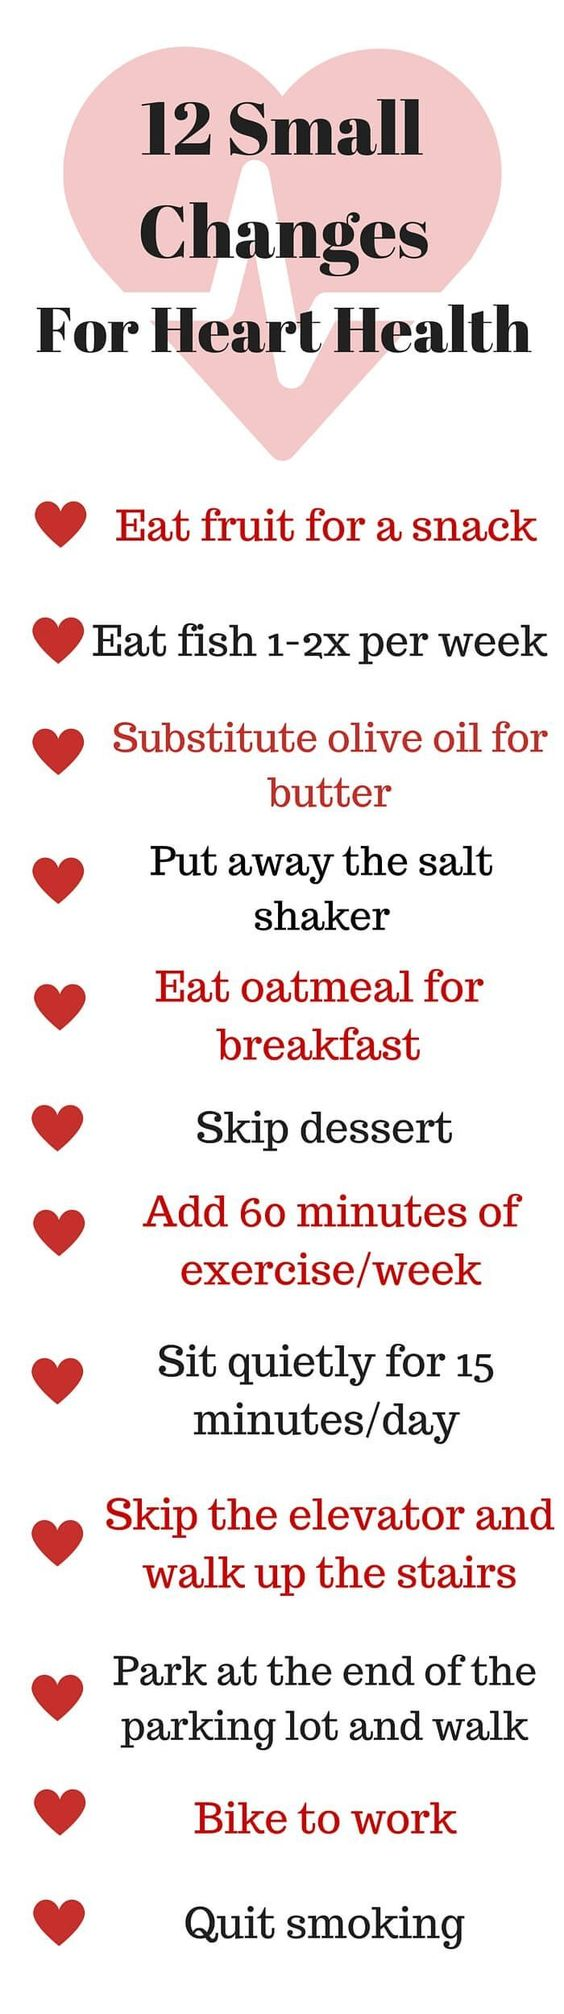 12 Small Changes For Heart Health - small changes can add up to make a big difference for heart failure: